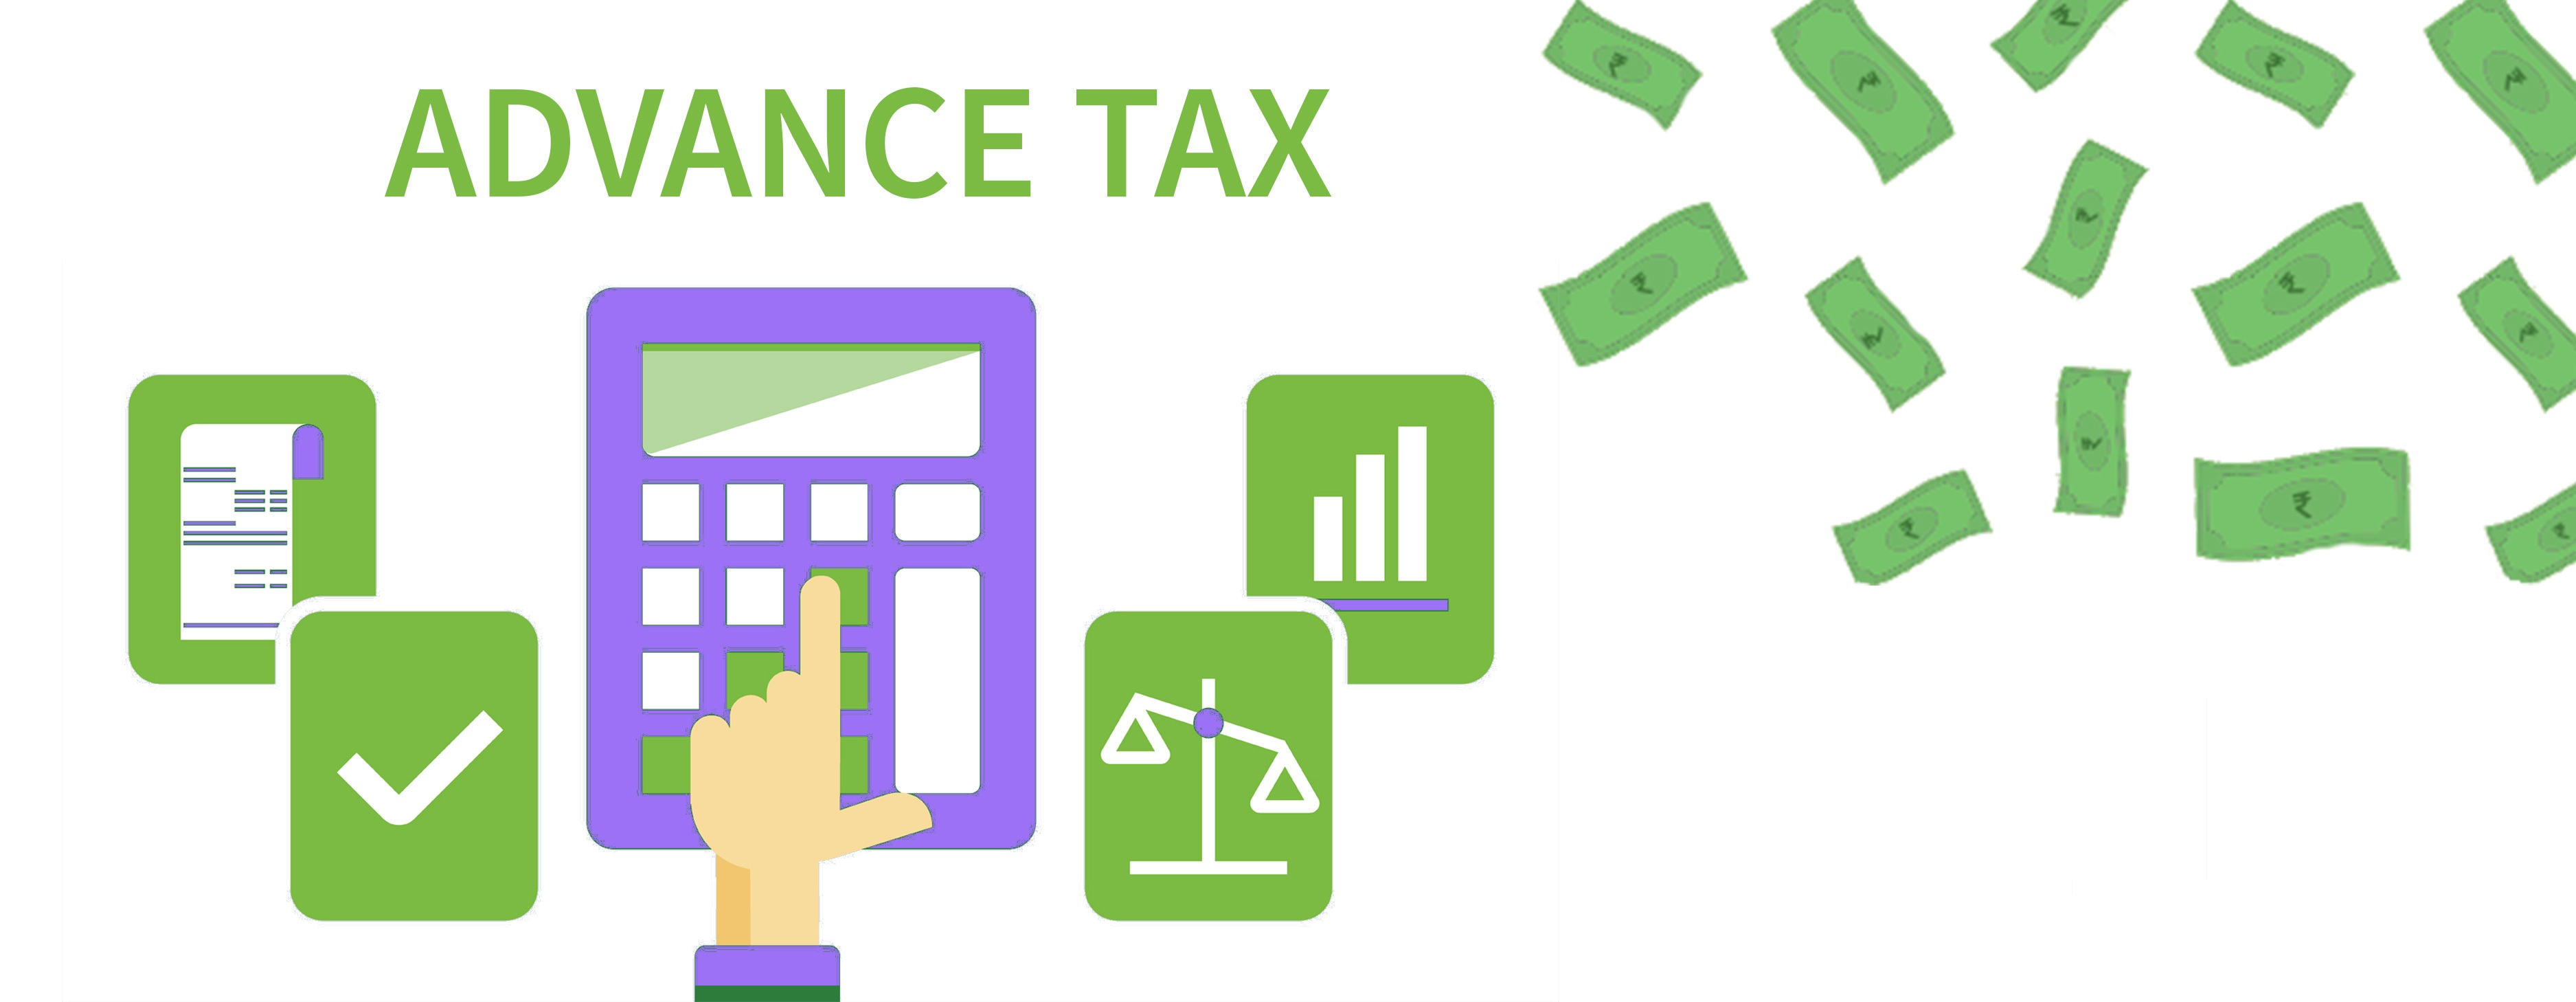 Advance Tax Calculations & Important Dates